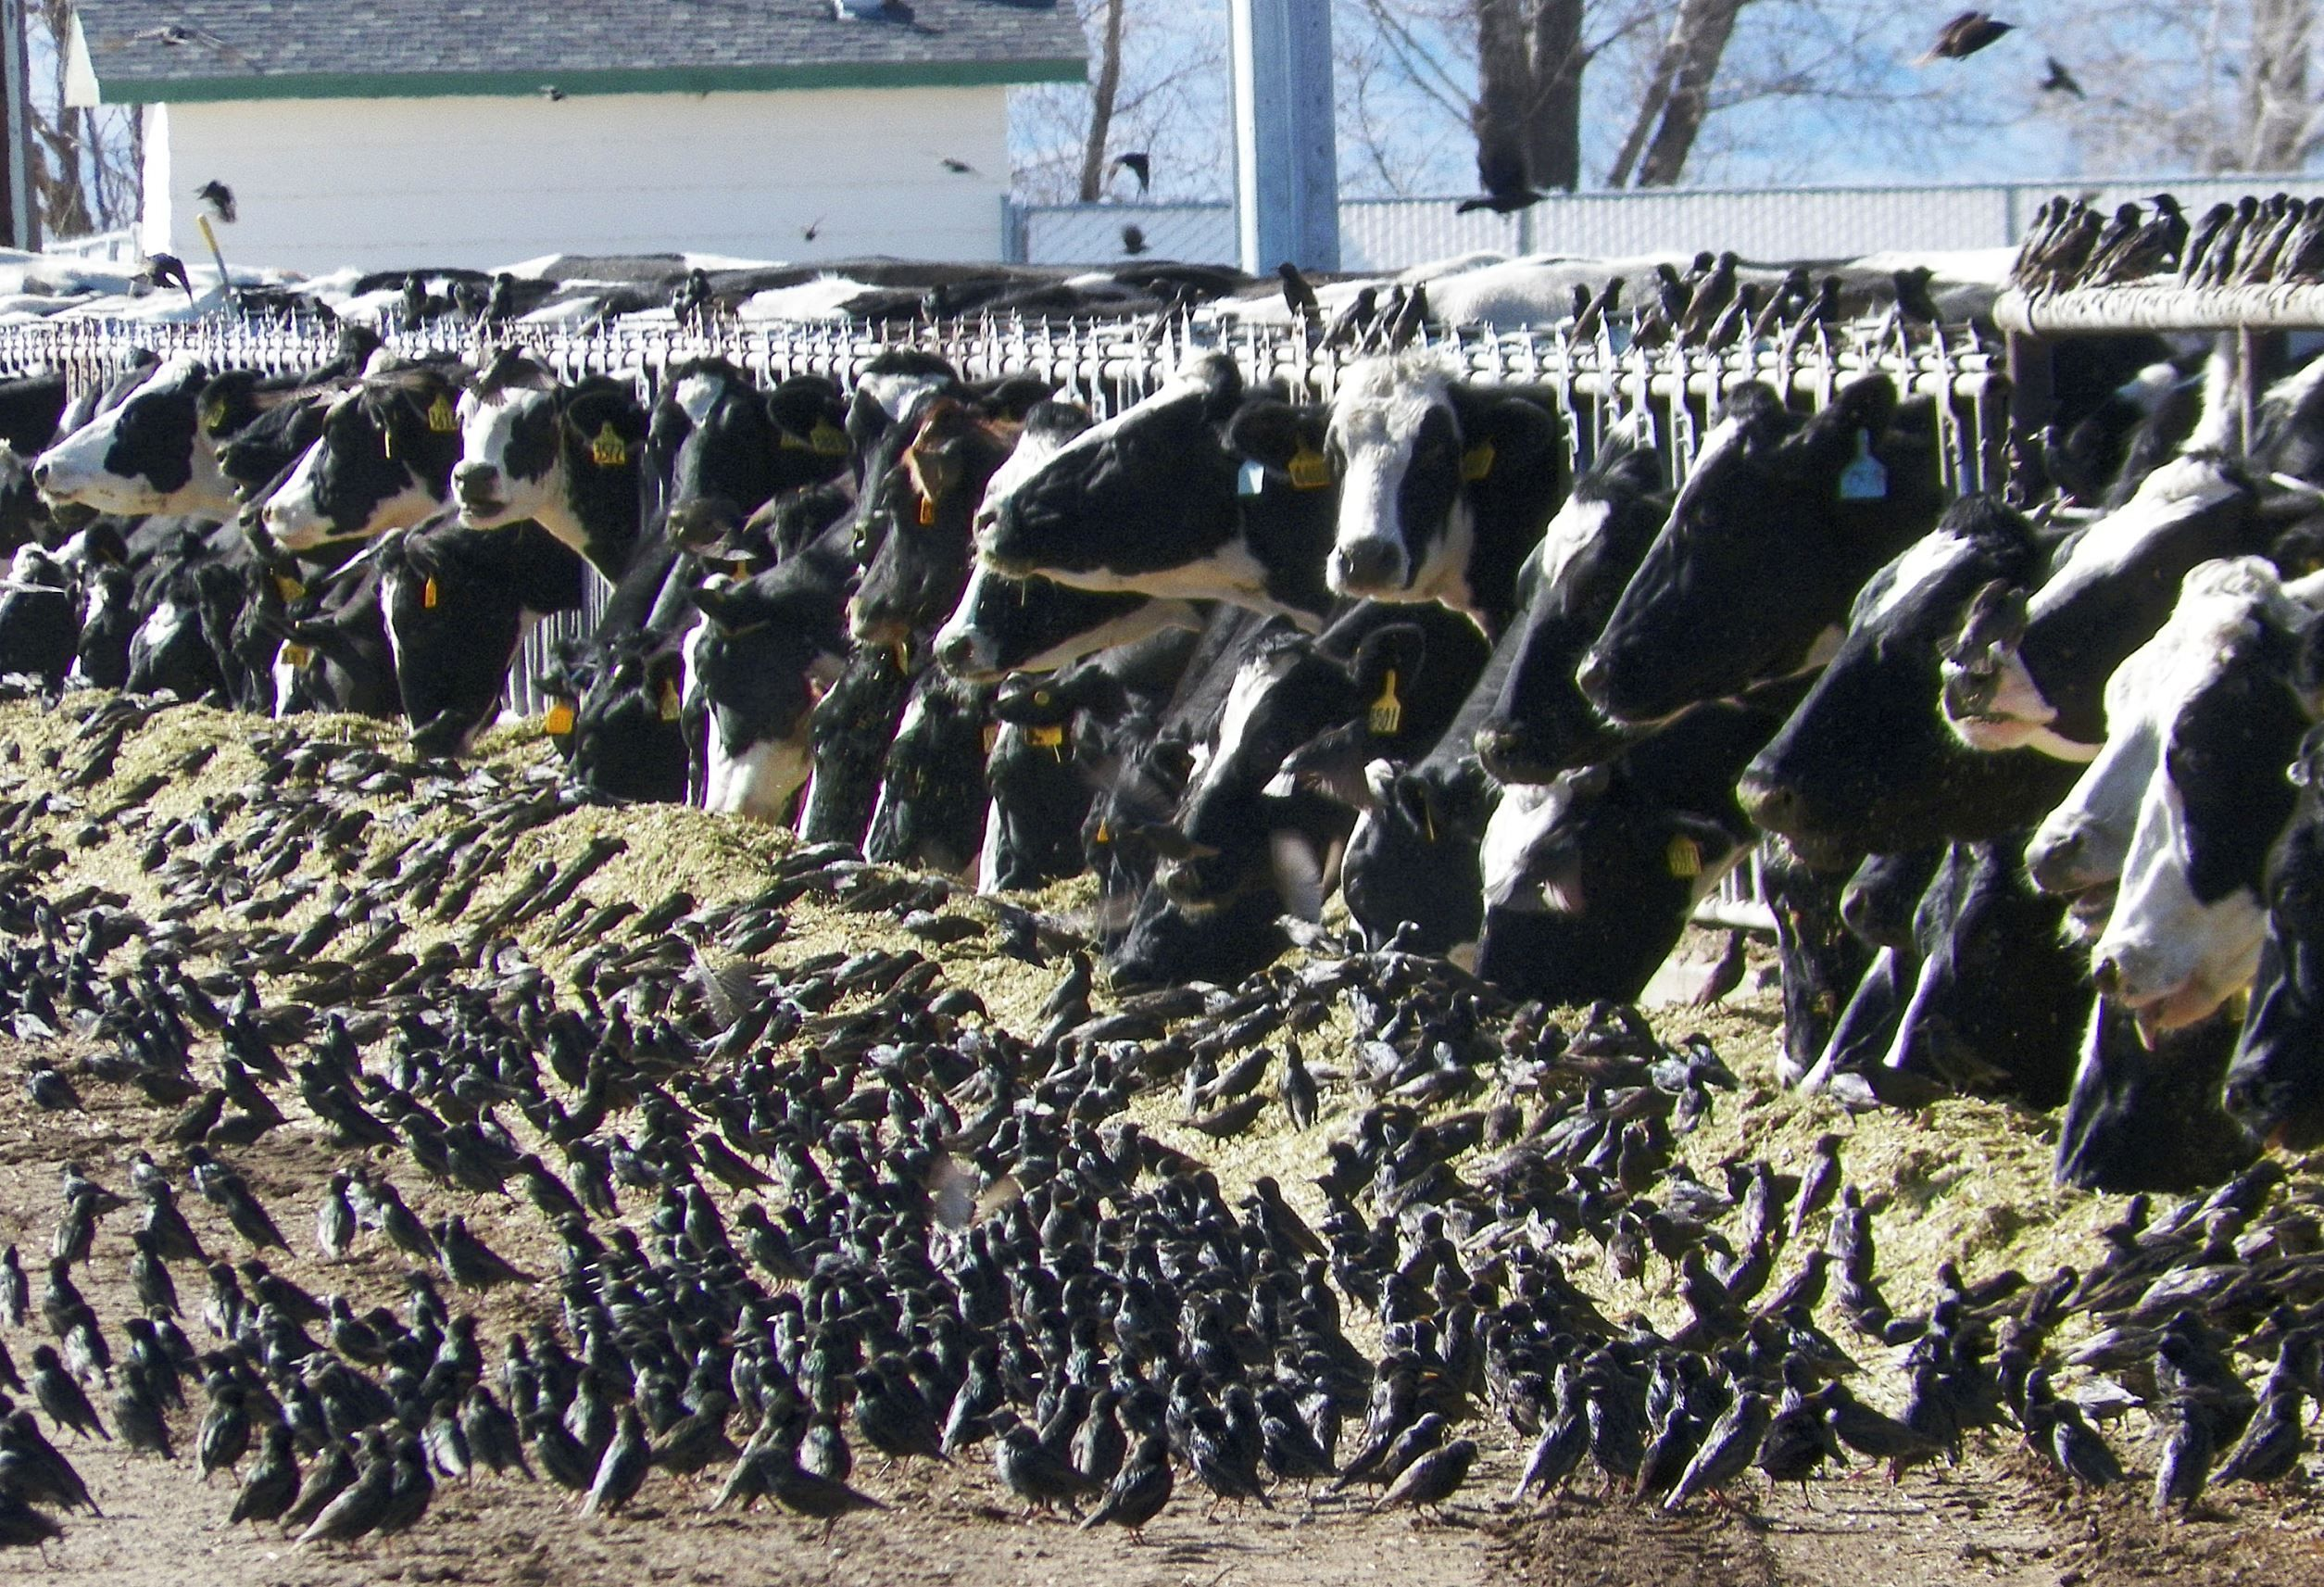 In this undated photo provided by the USDA Animal and Plant Health Inspection Service, a flock of Eu... - AP Photo/USDA APHIS, Jack Spencer